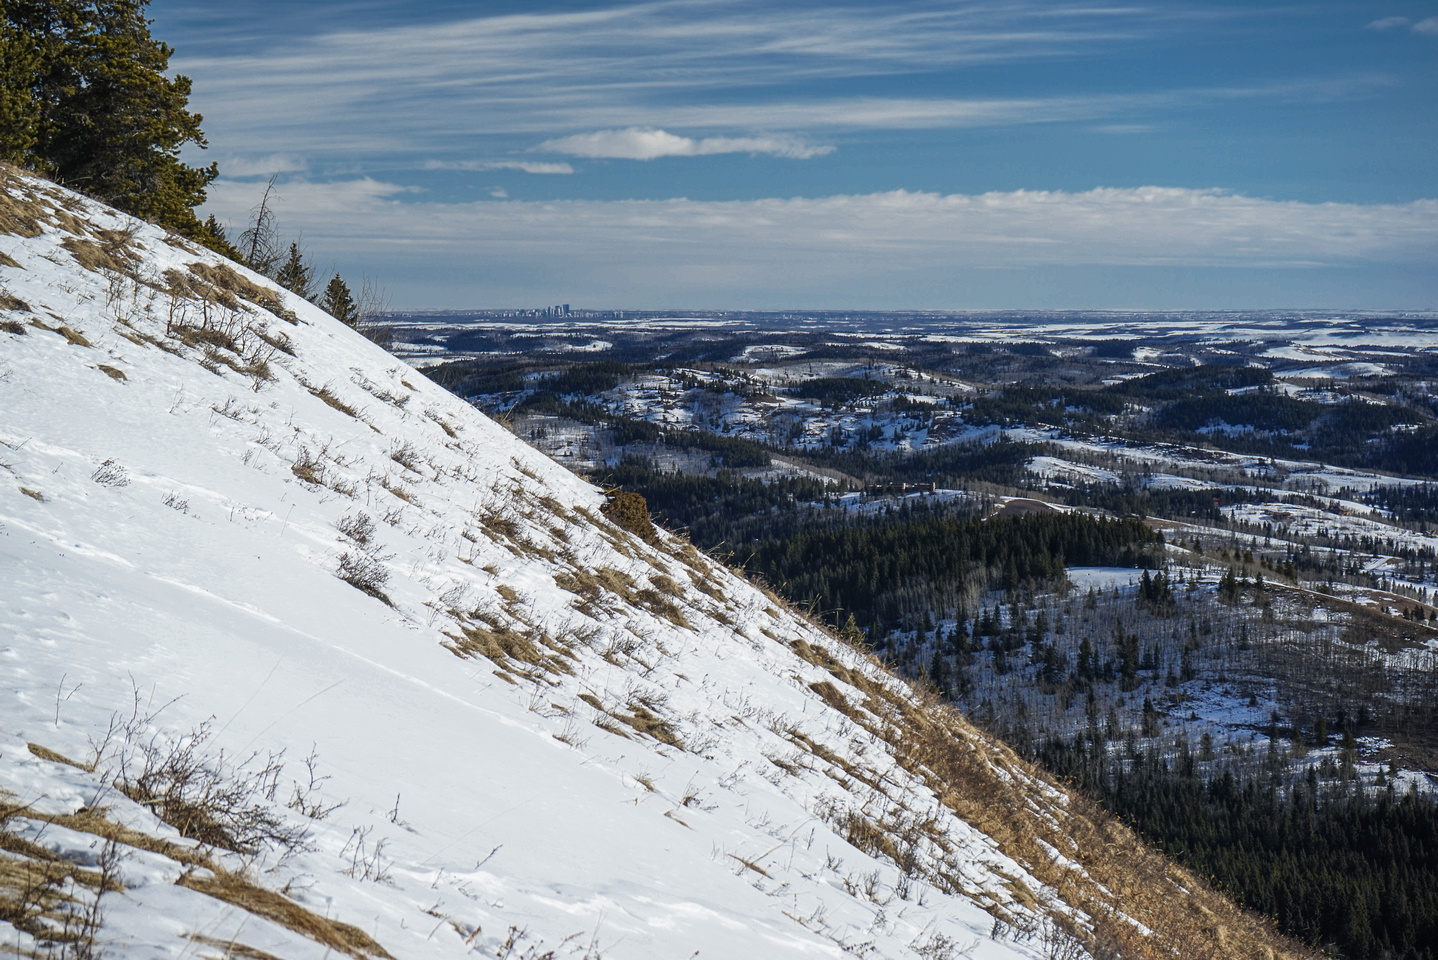 Calgary is visible from near the summit.